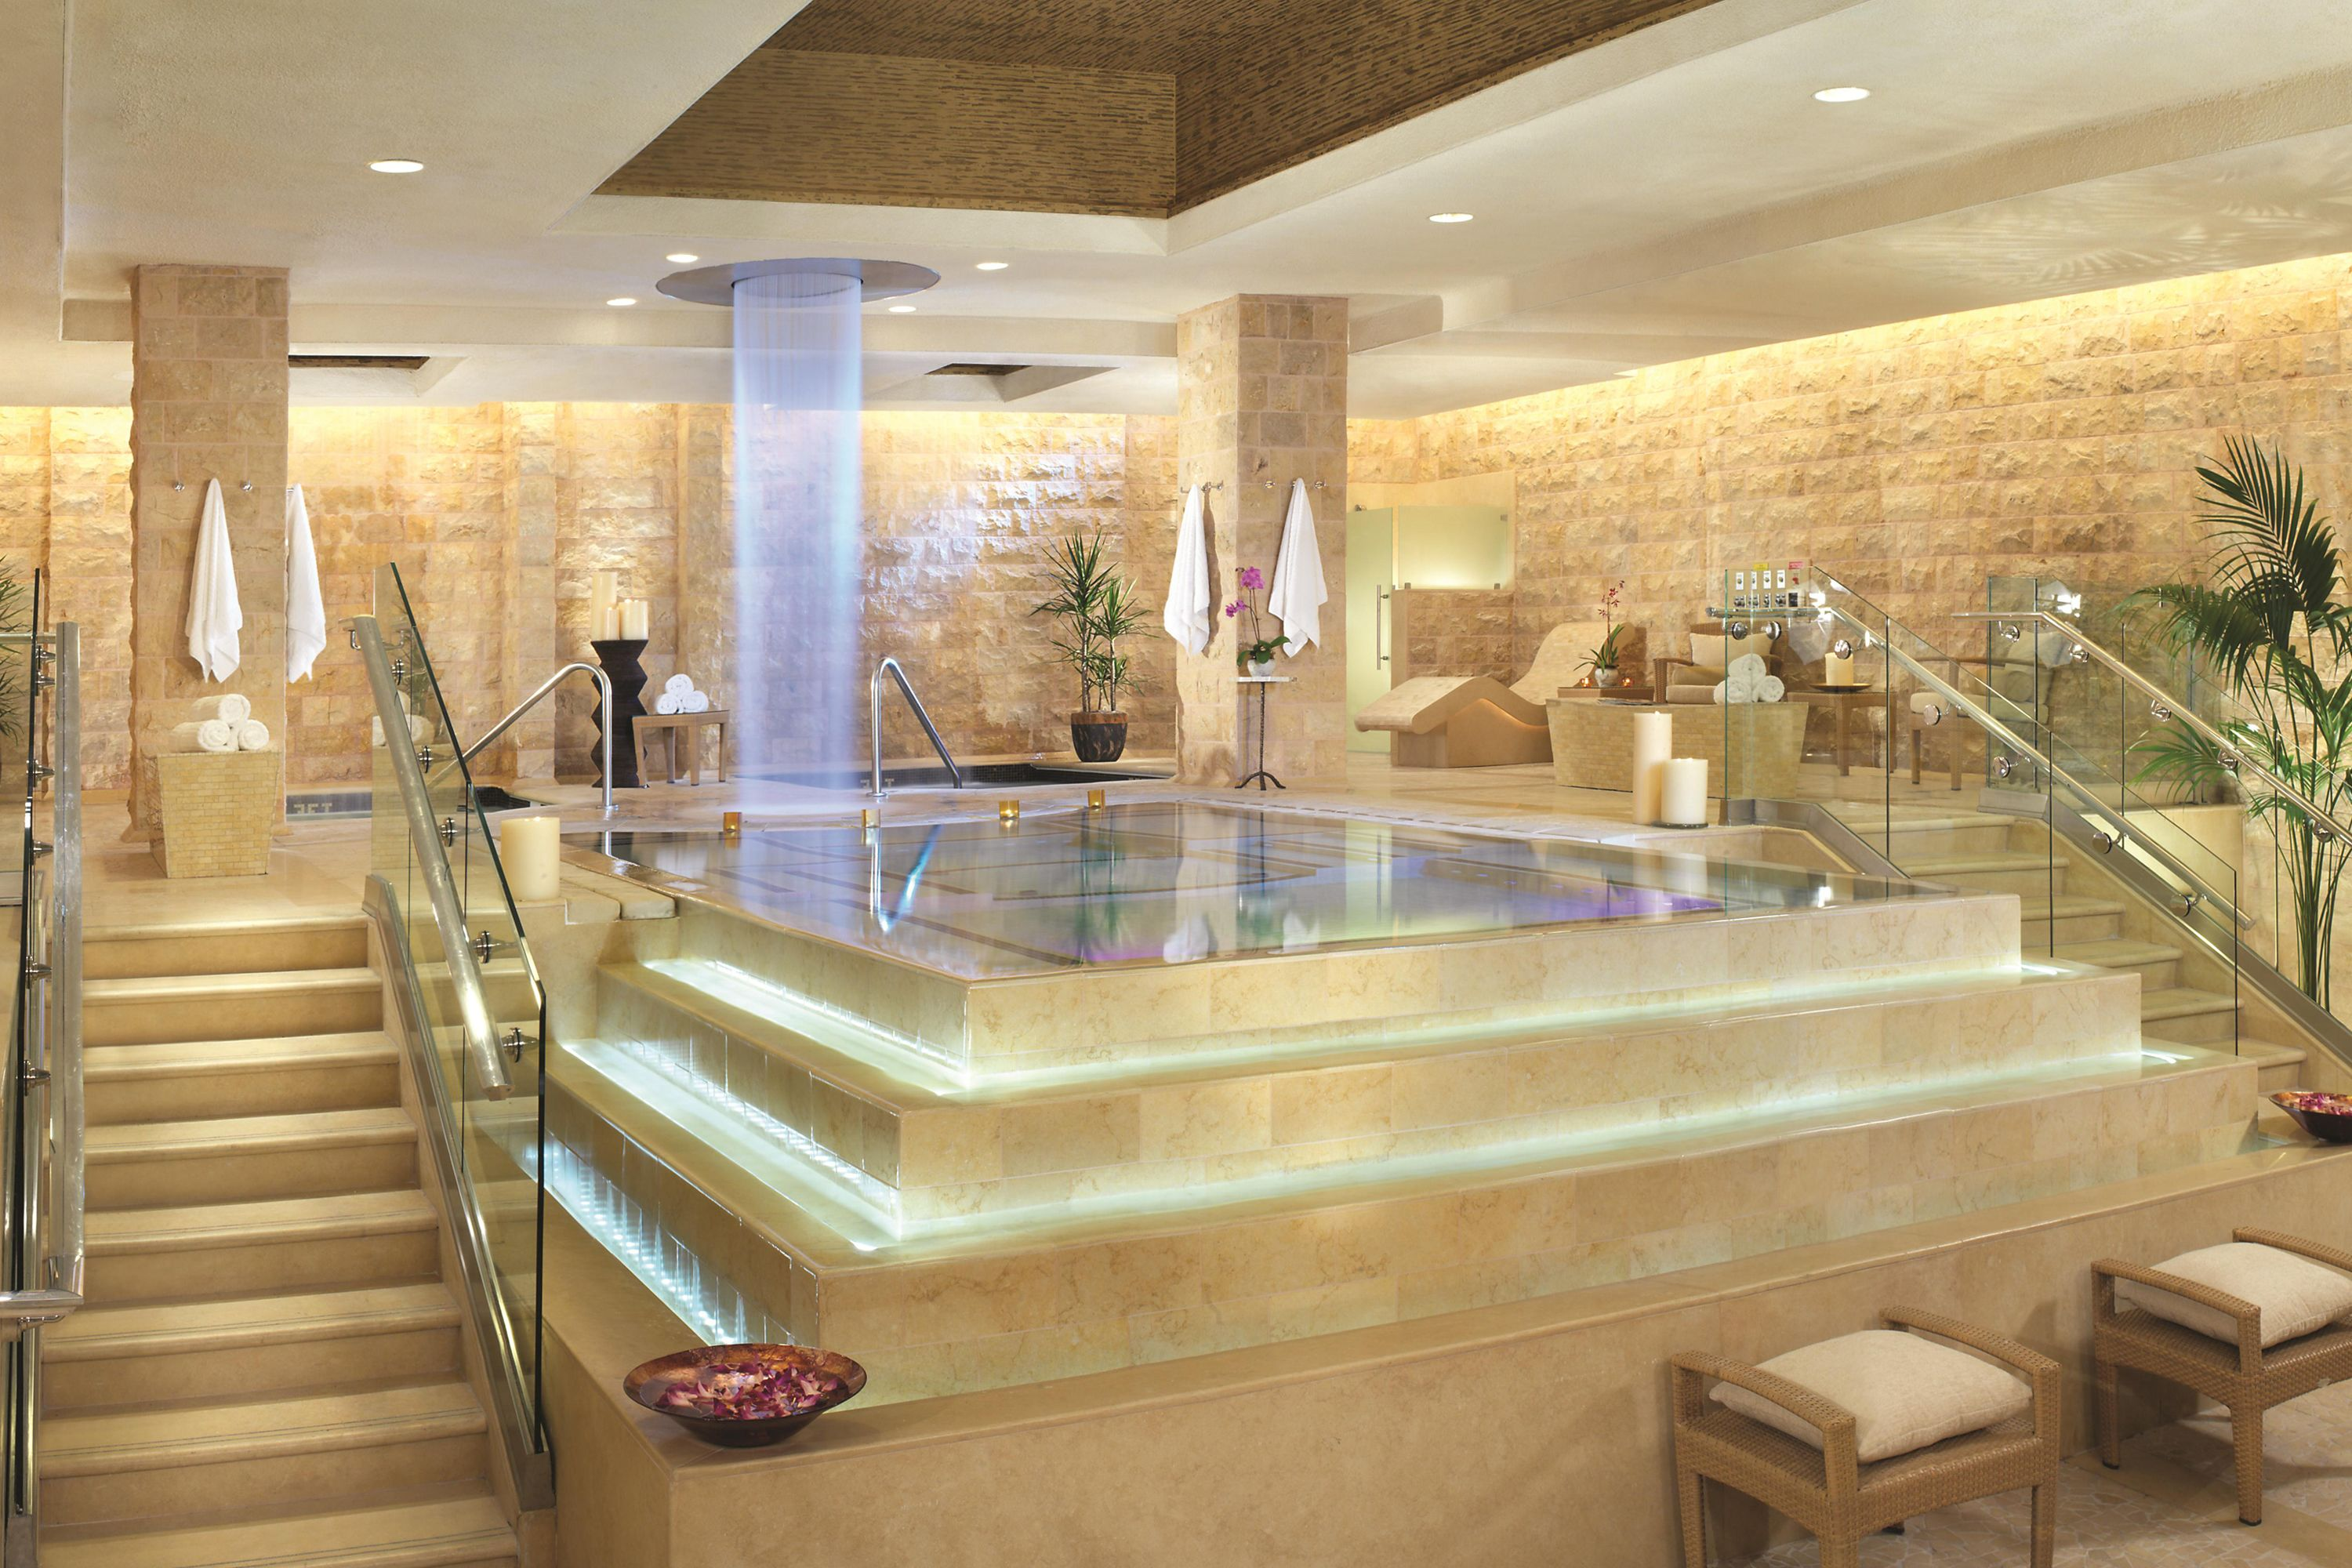 The Best Hotels With Jacuzzis In Las Vegas